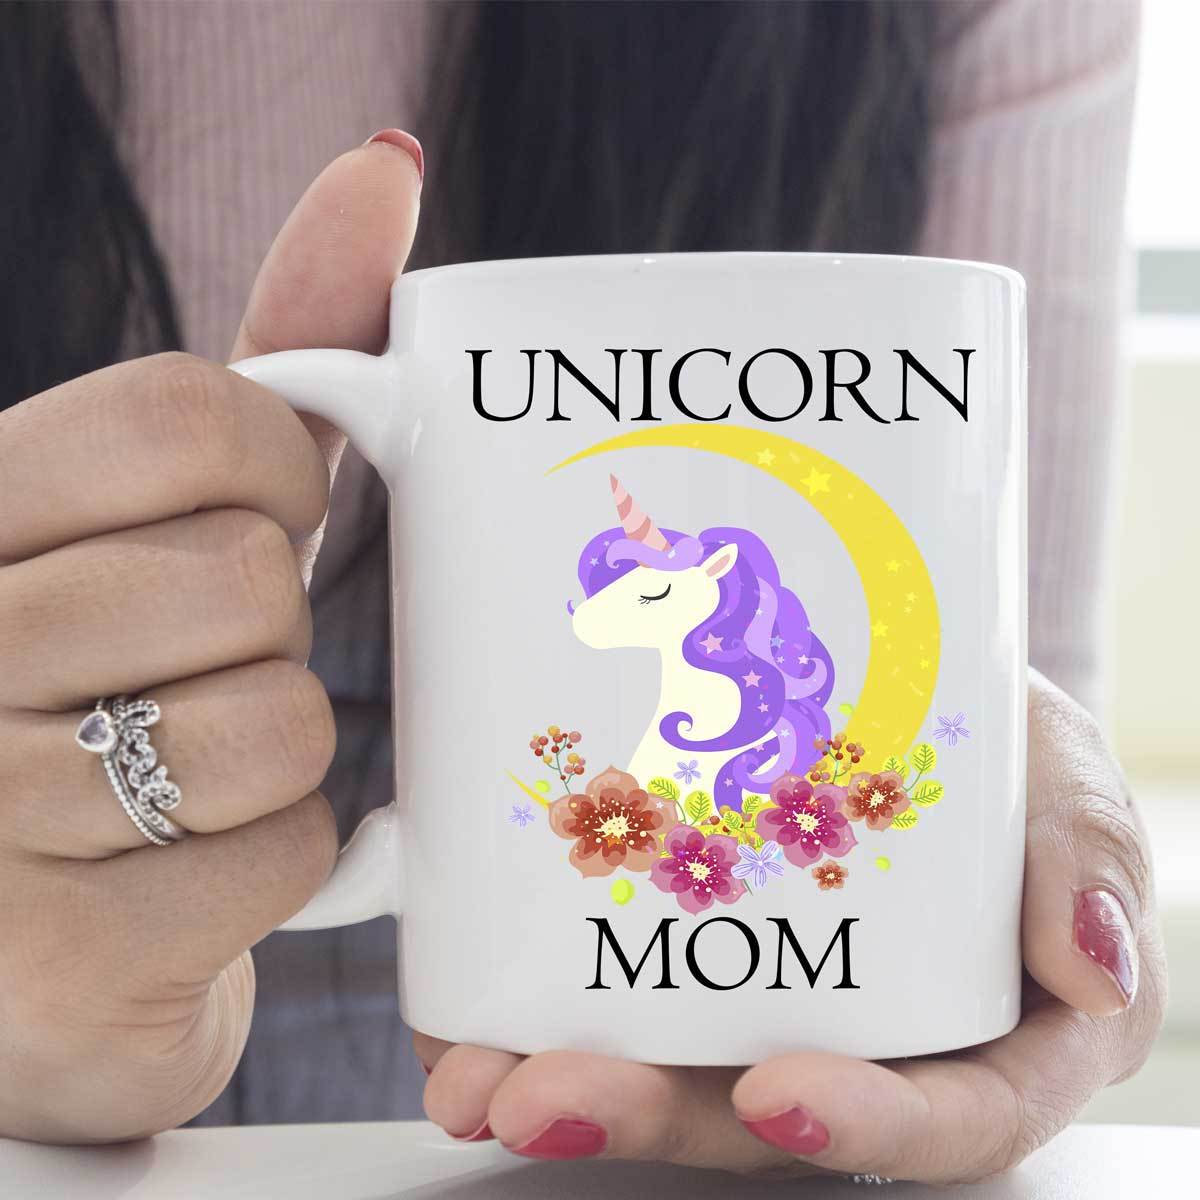 Unicorn Mom White Mug Drinkware